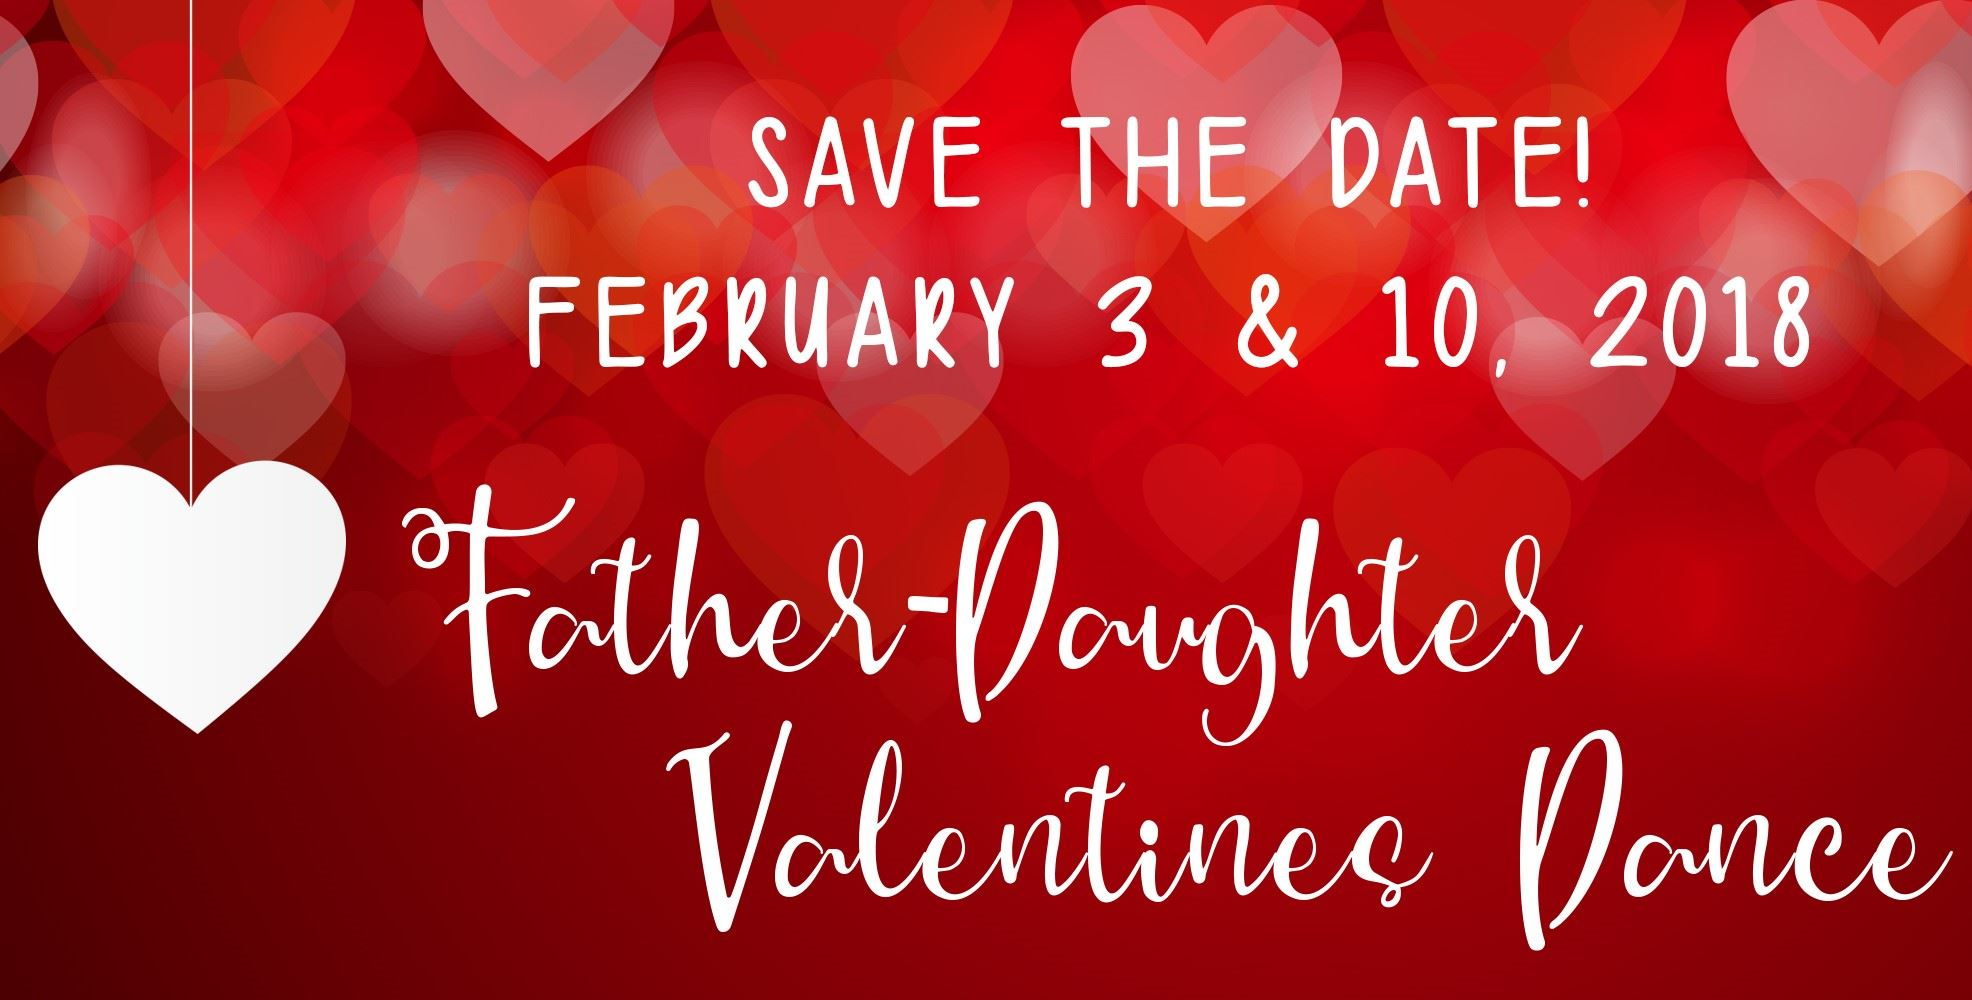 Father-Daughter Valentines Dance - Save the Date